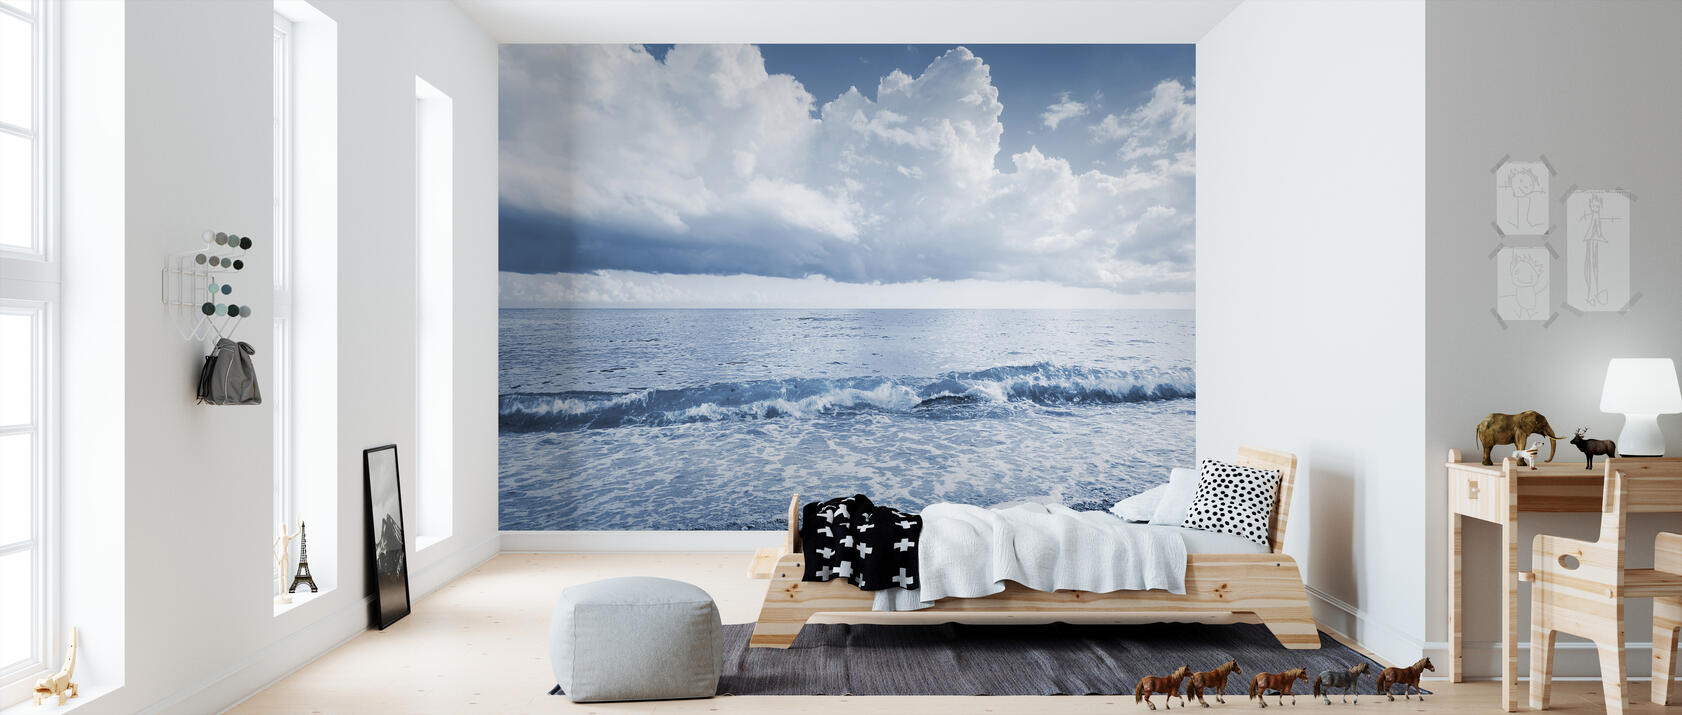 sea and dramatic clouds fototapete nach ma photowall. Black Bedroom Furniture Sets. Home Design Ideas